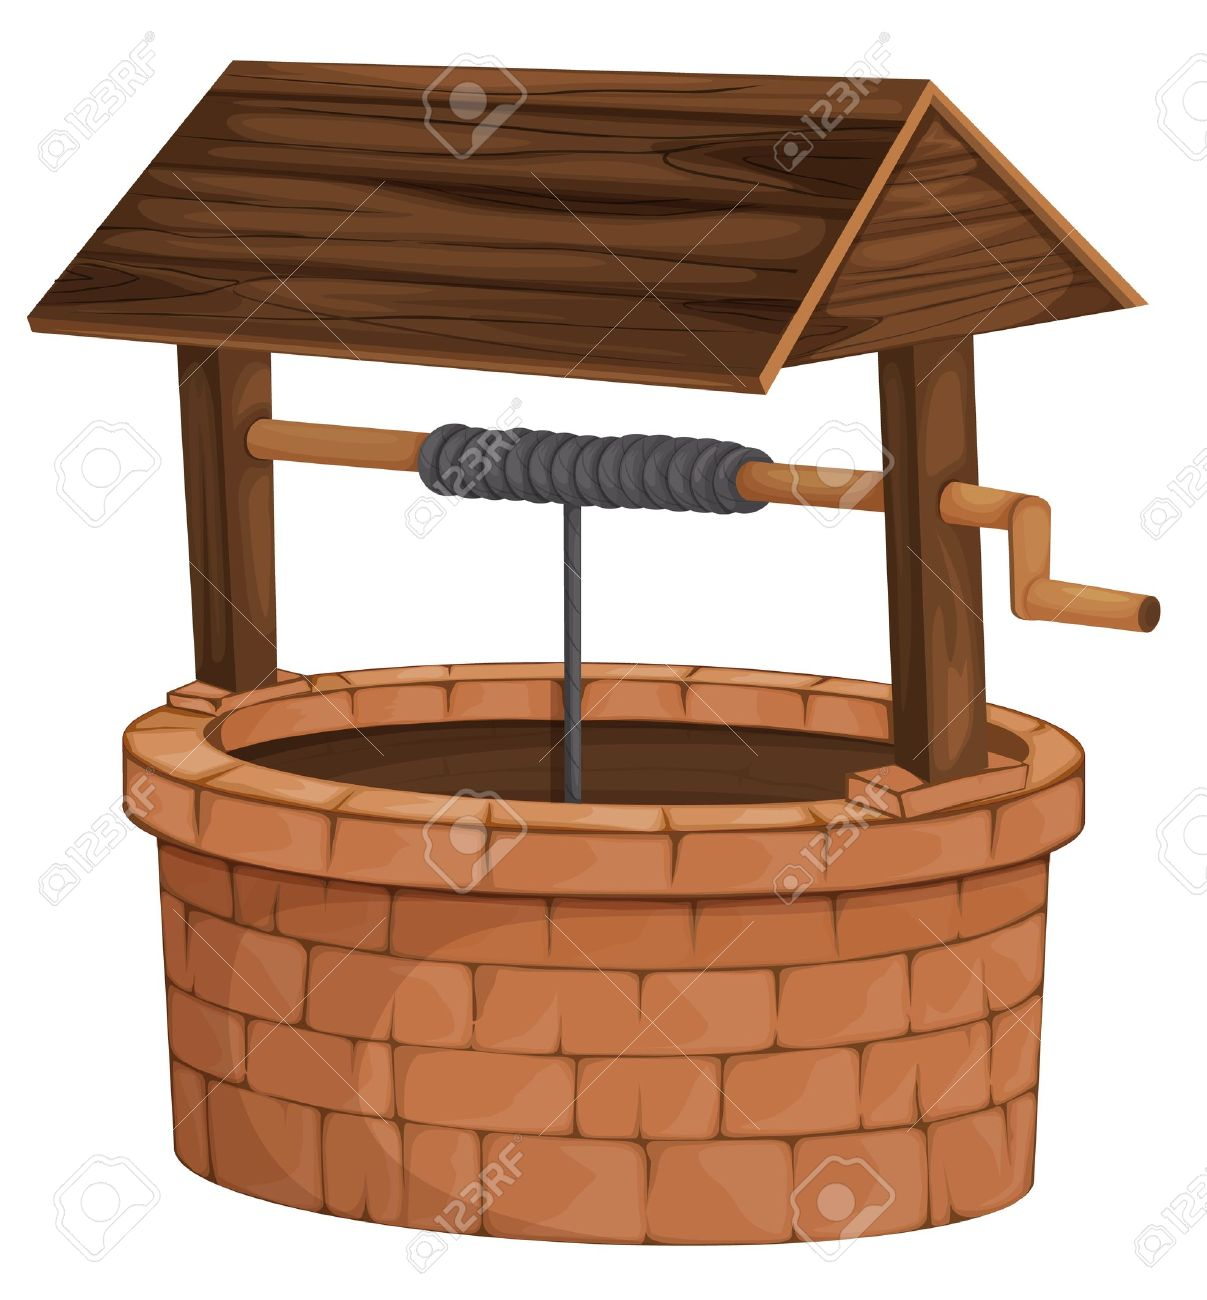 Water well clipart.